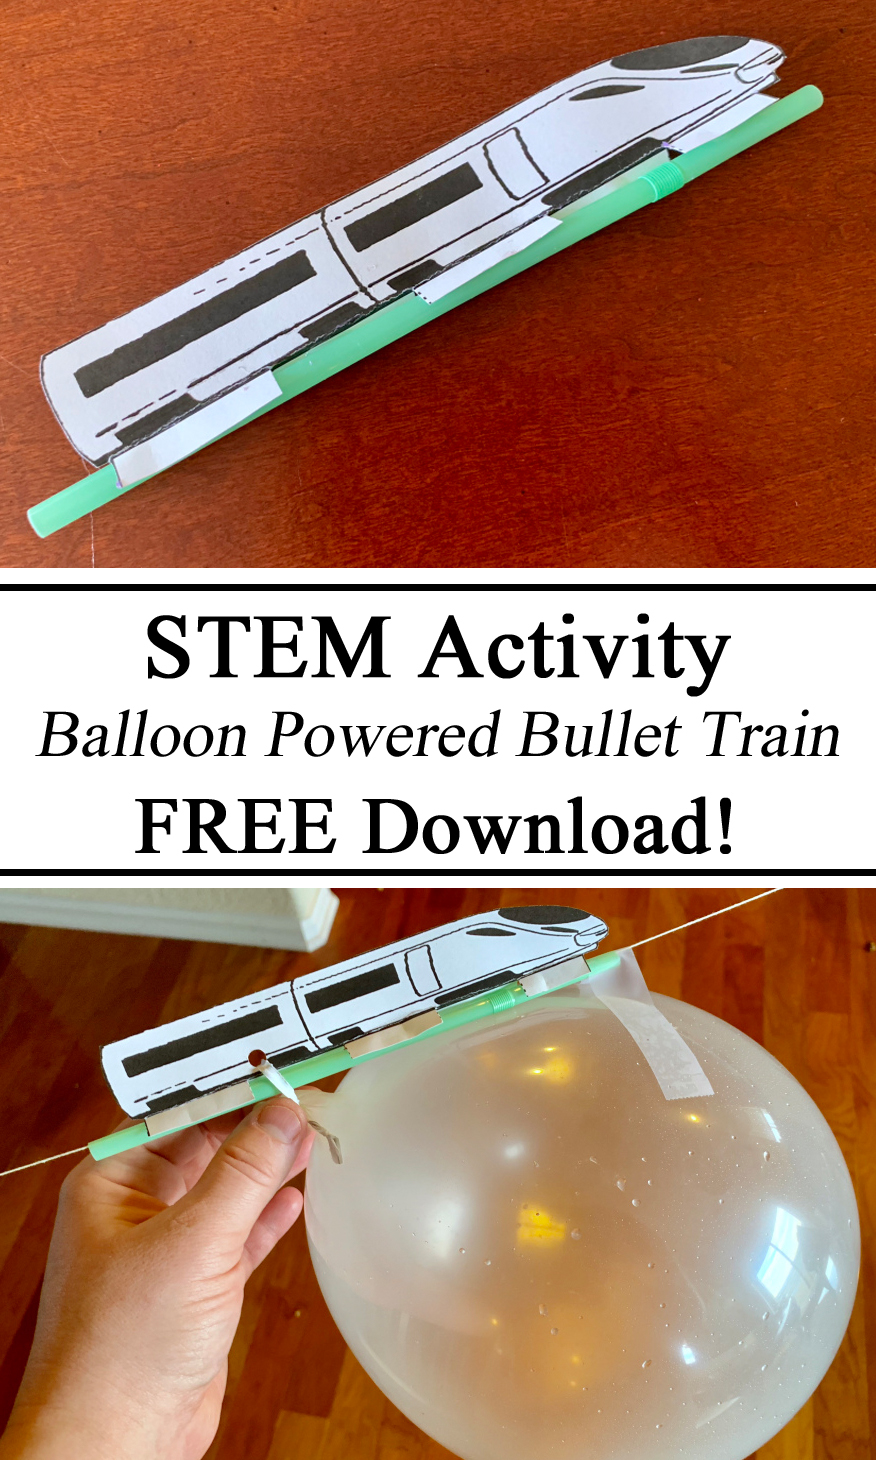 STEM, STEAM, Education, Learning, Science Experiment, Science for Kids, Bullet Train, Balloon Powered, Straw, Energy, Kinetic, Stored, Craft, Free Printables, Printable, Download, Learning About Power, Homeschool, Homeschooling, Montessori, Inspired, Ideas, Preschool, Teachers, Kindergarten, Early Childhood Education